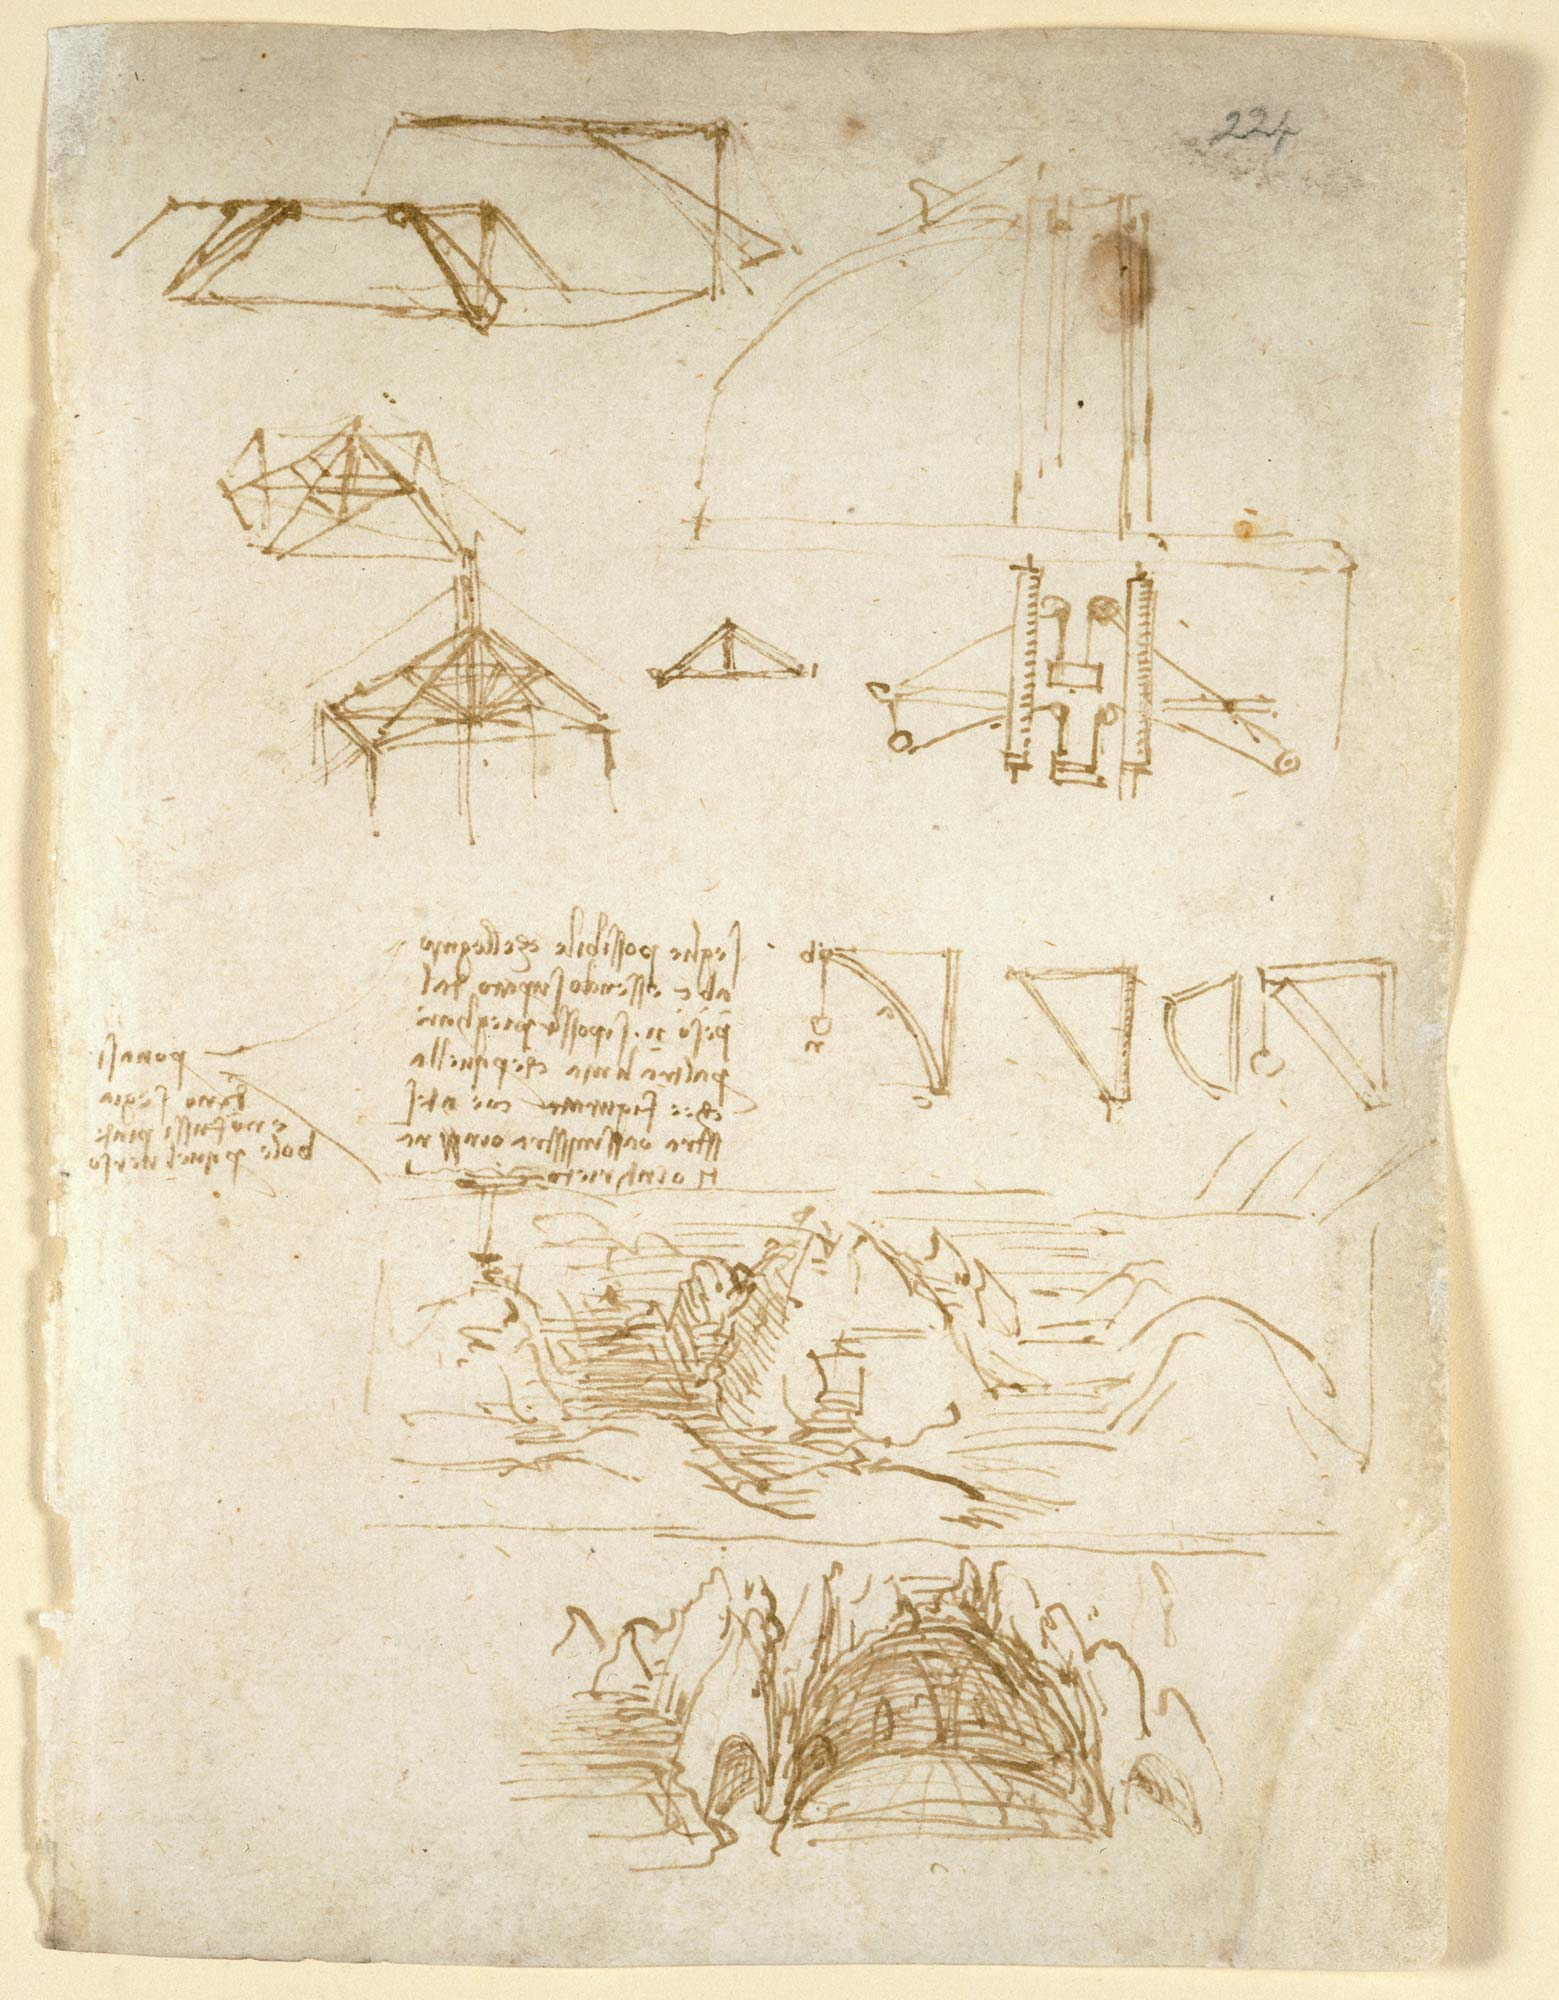 Page from Leonardo da Vinci's notebook, f.224